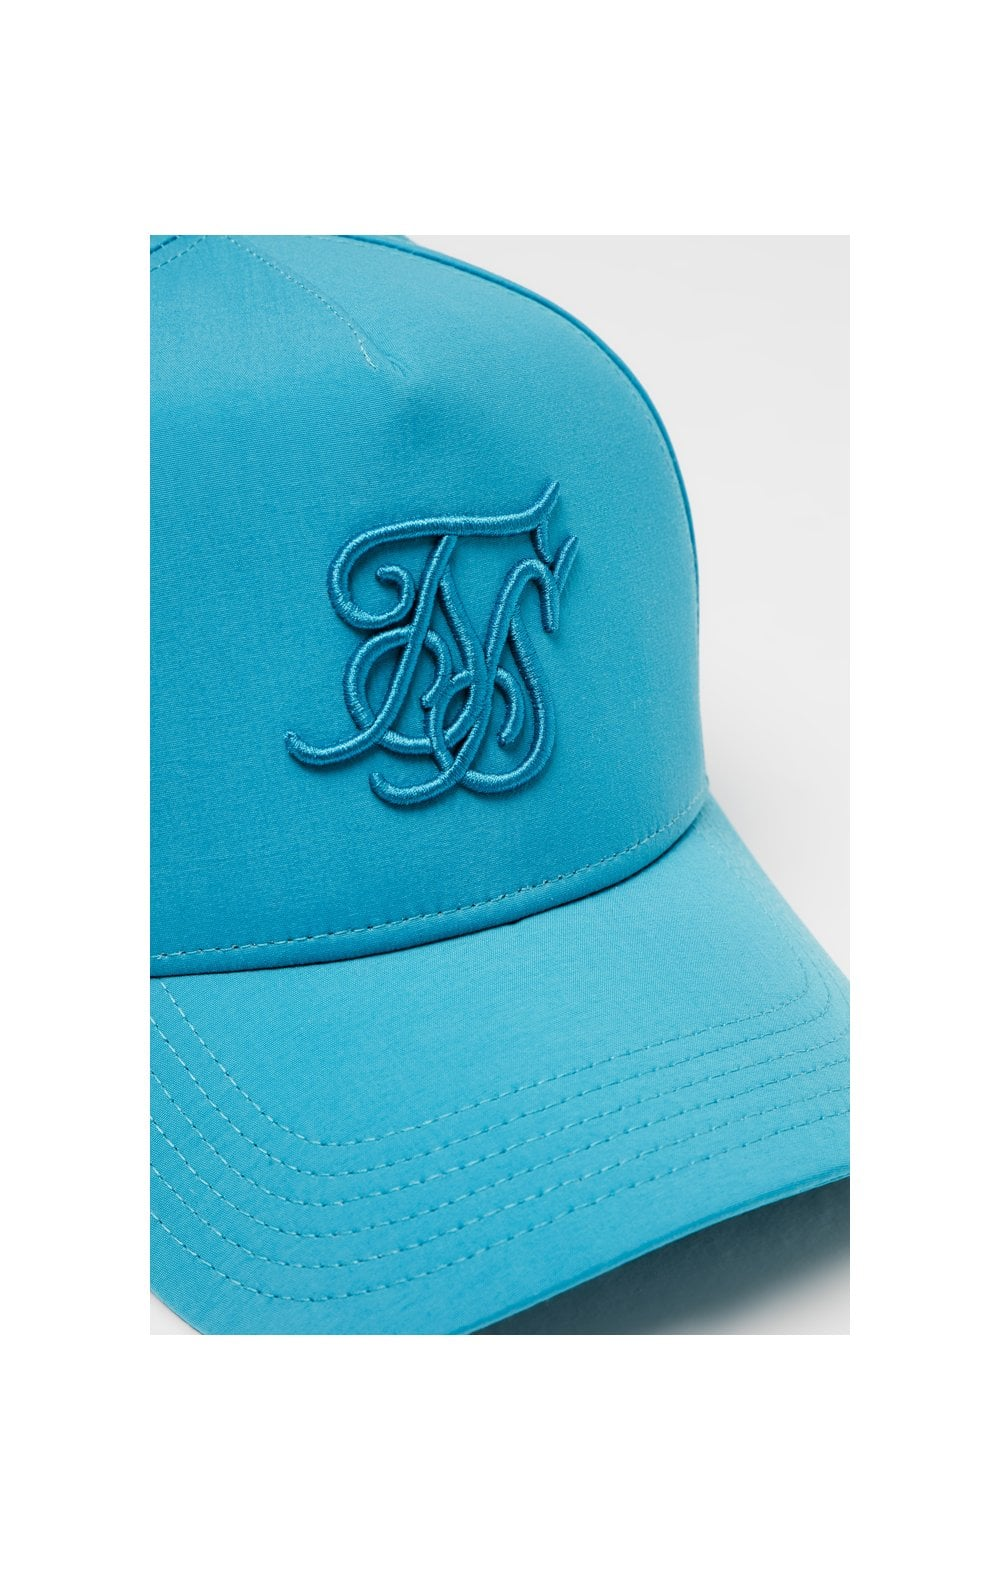 SikSilk Crushed Nylon Full Trucker - Teal (1)